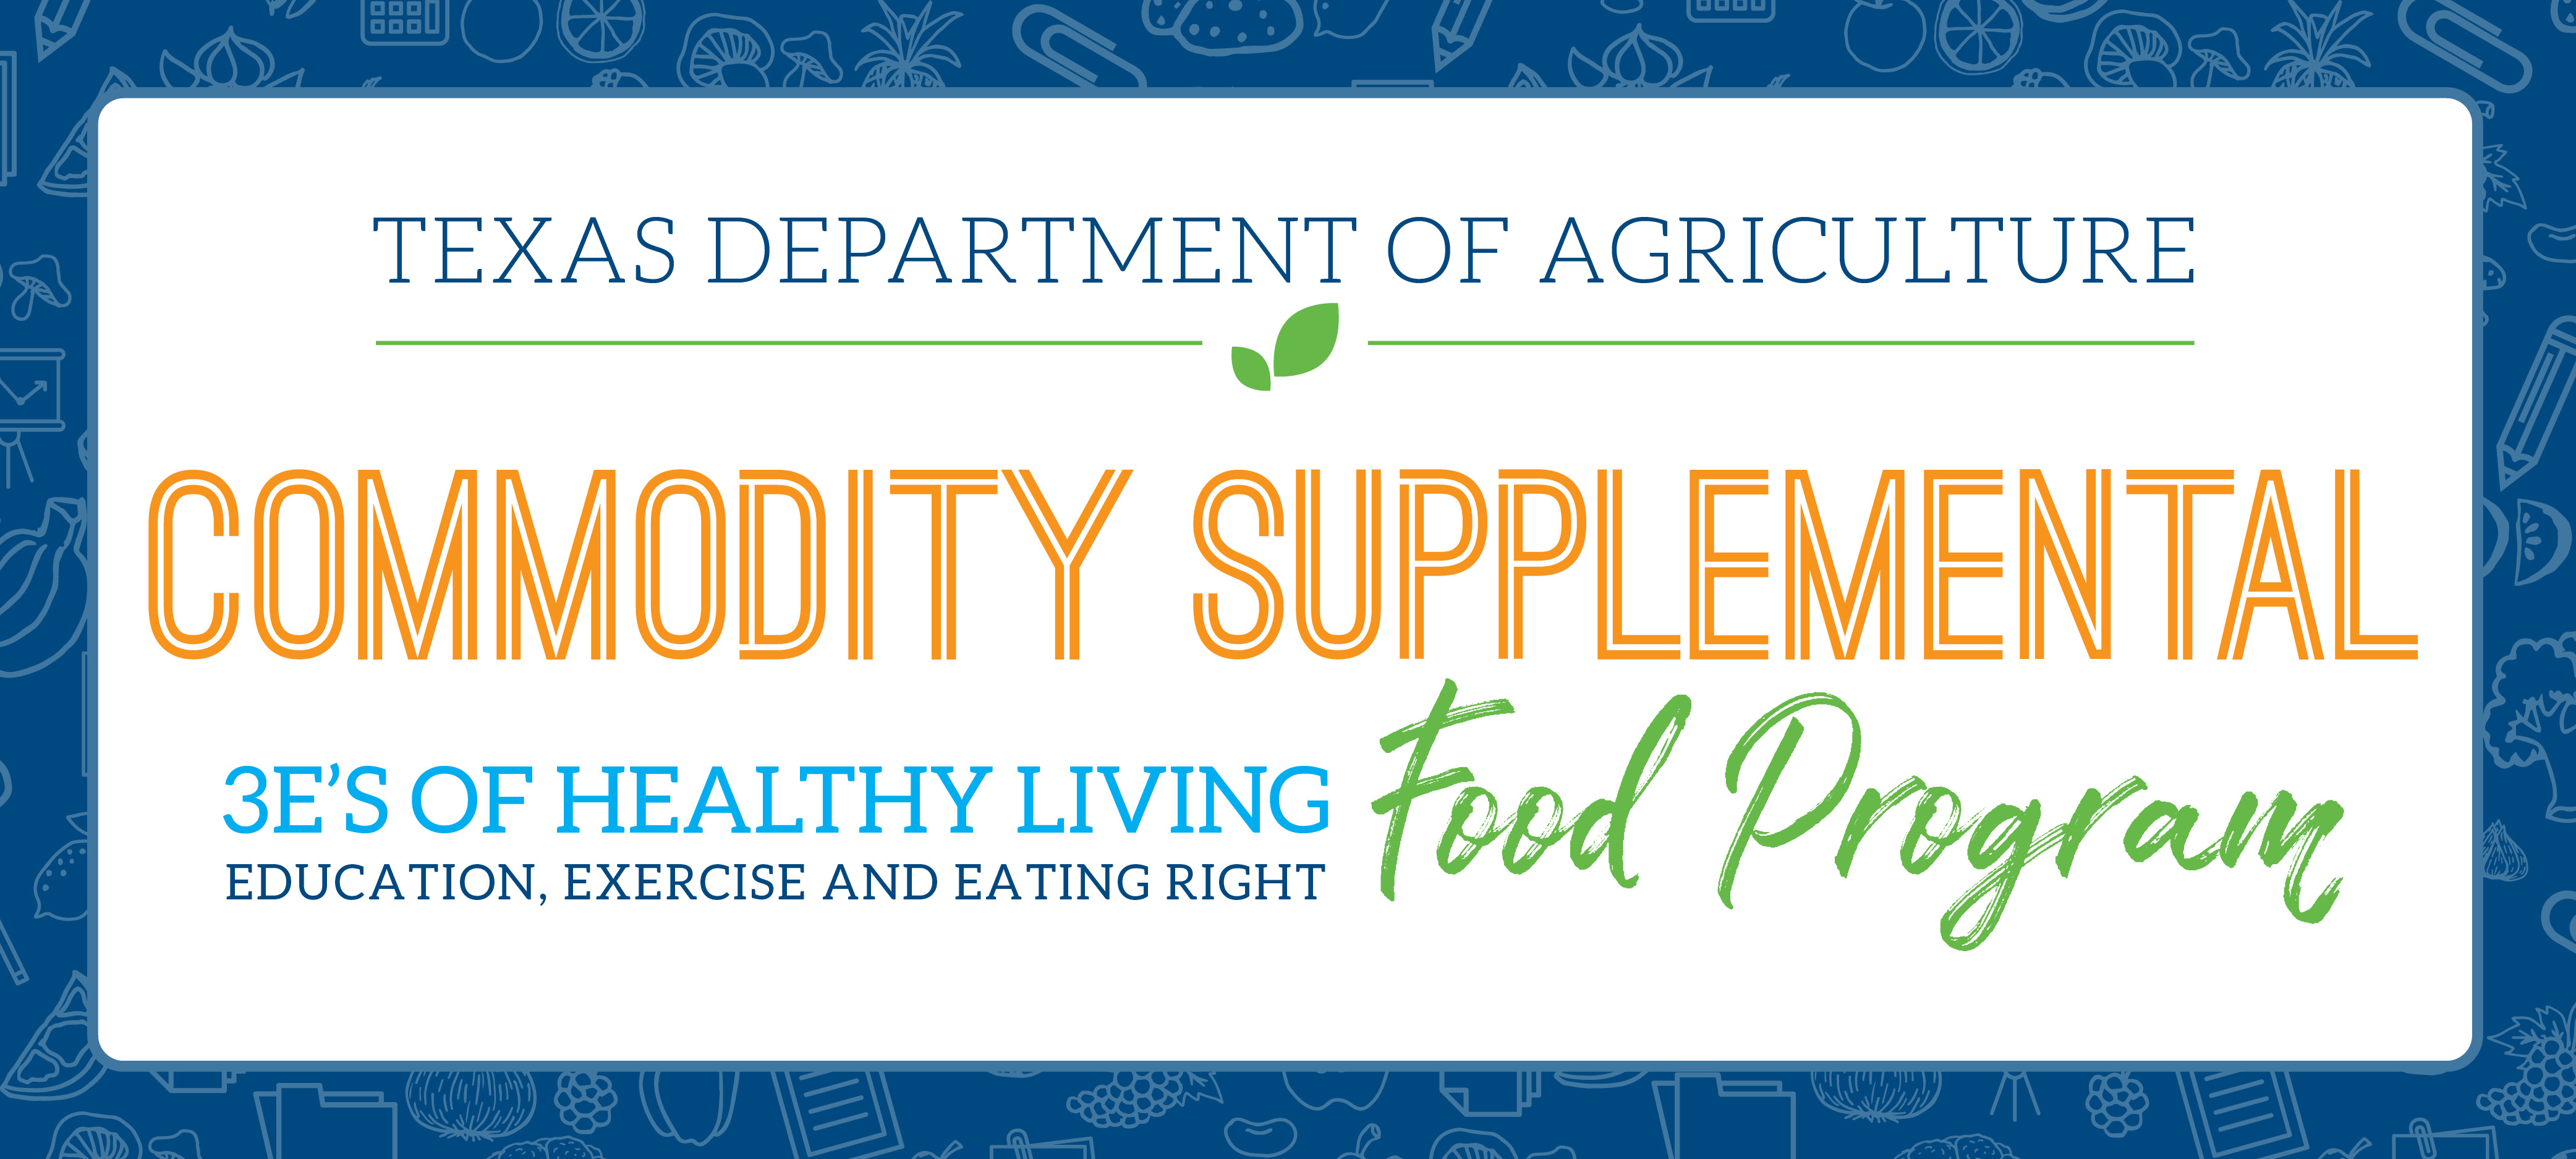 Commodity Supplemental Food Program Banner